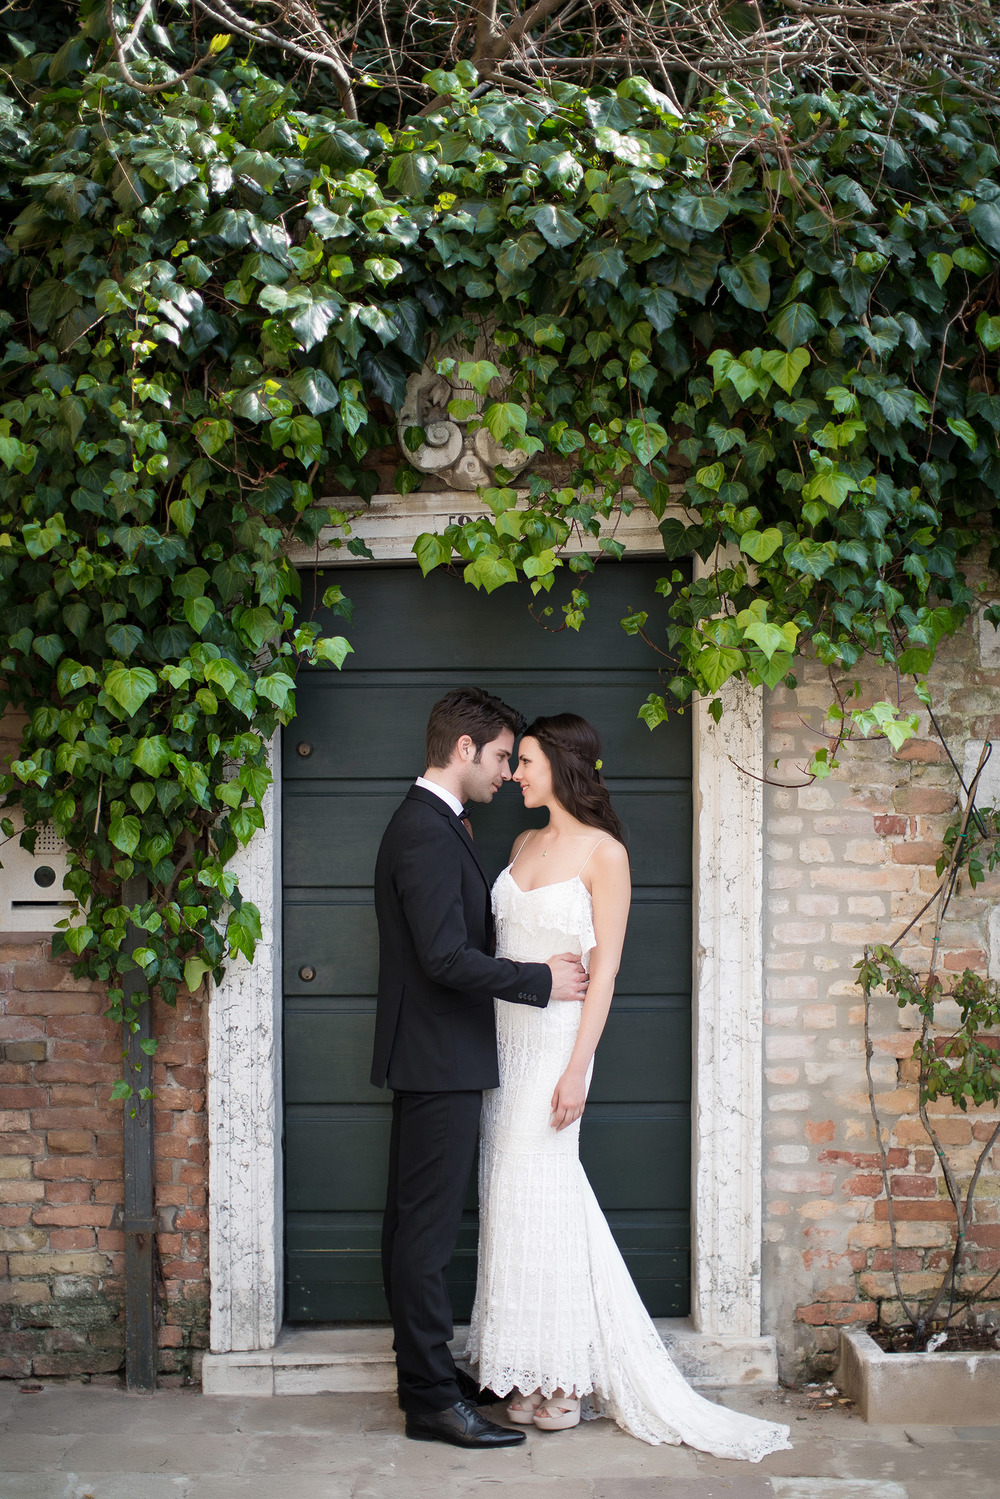 VeniceStyledShoot (119 of 170).jpg